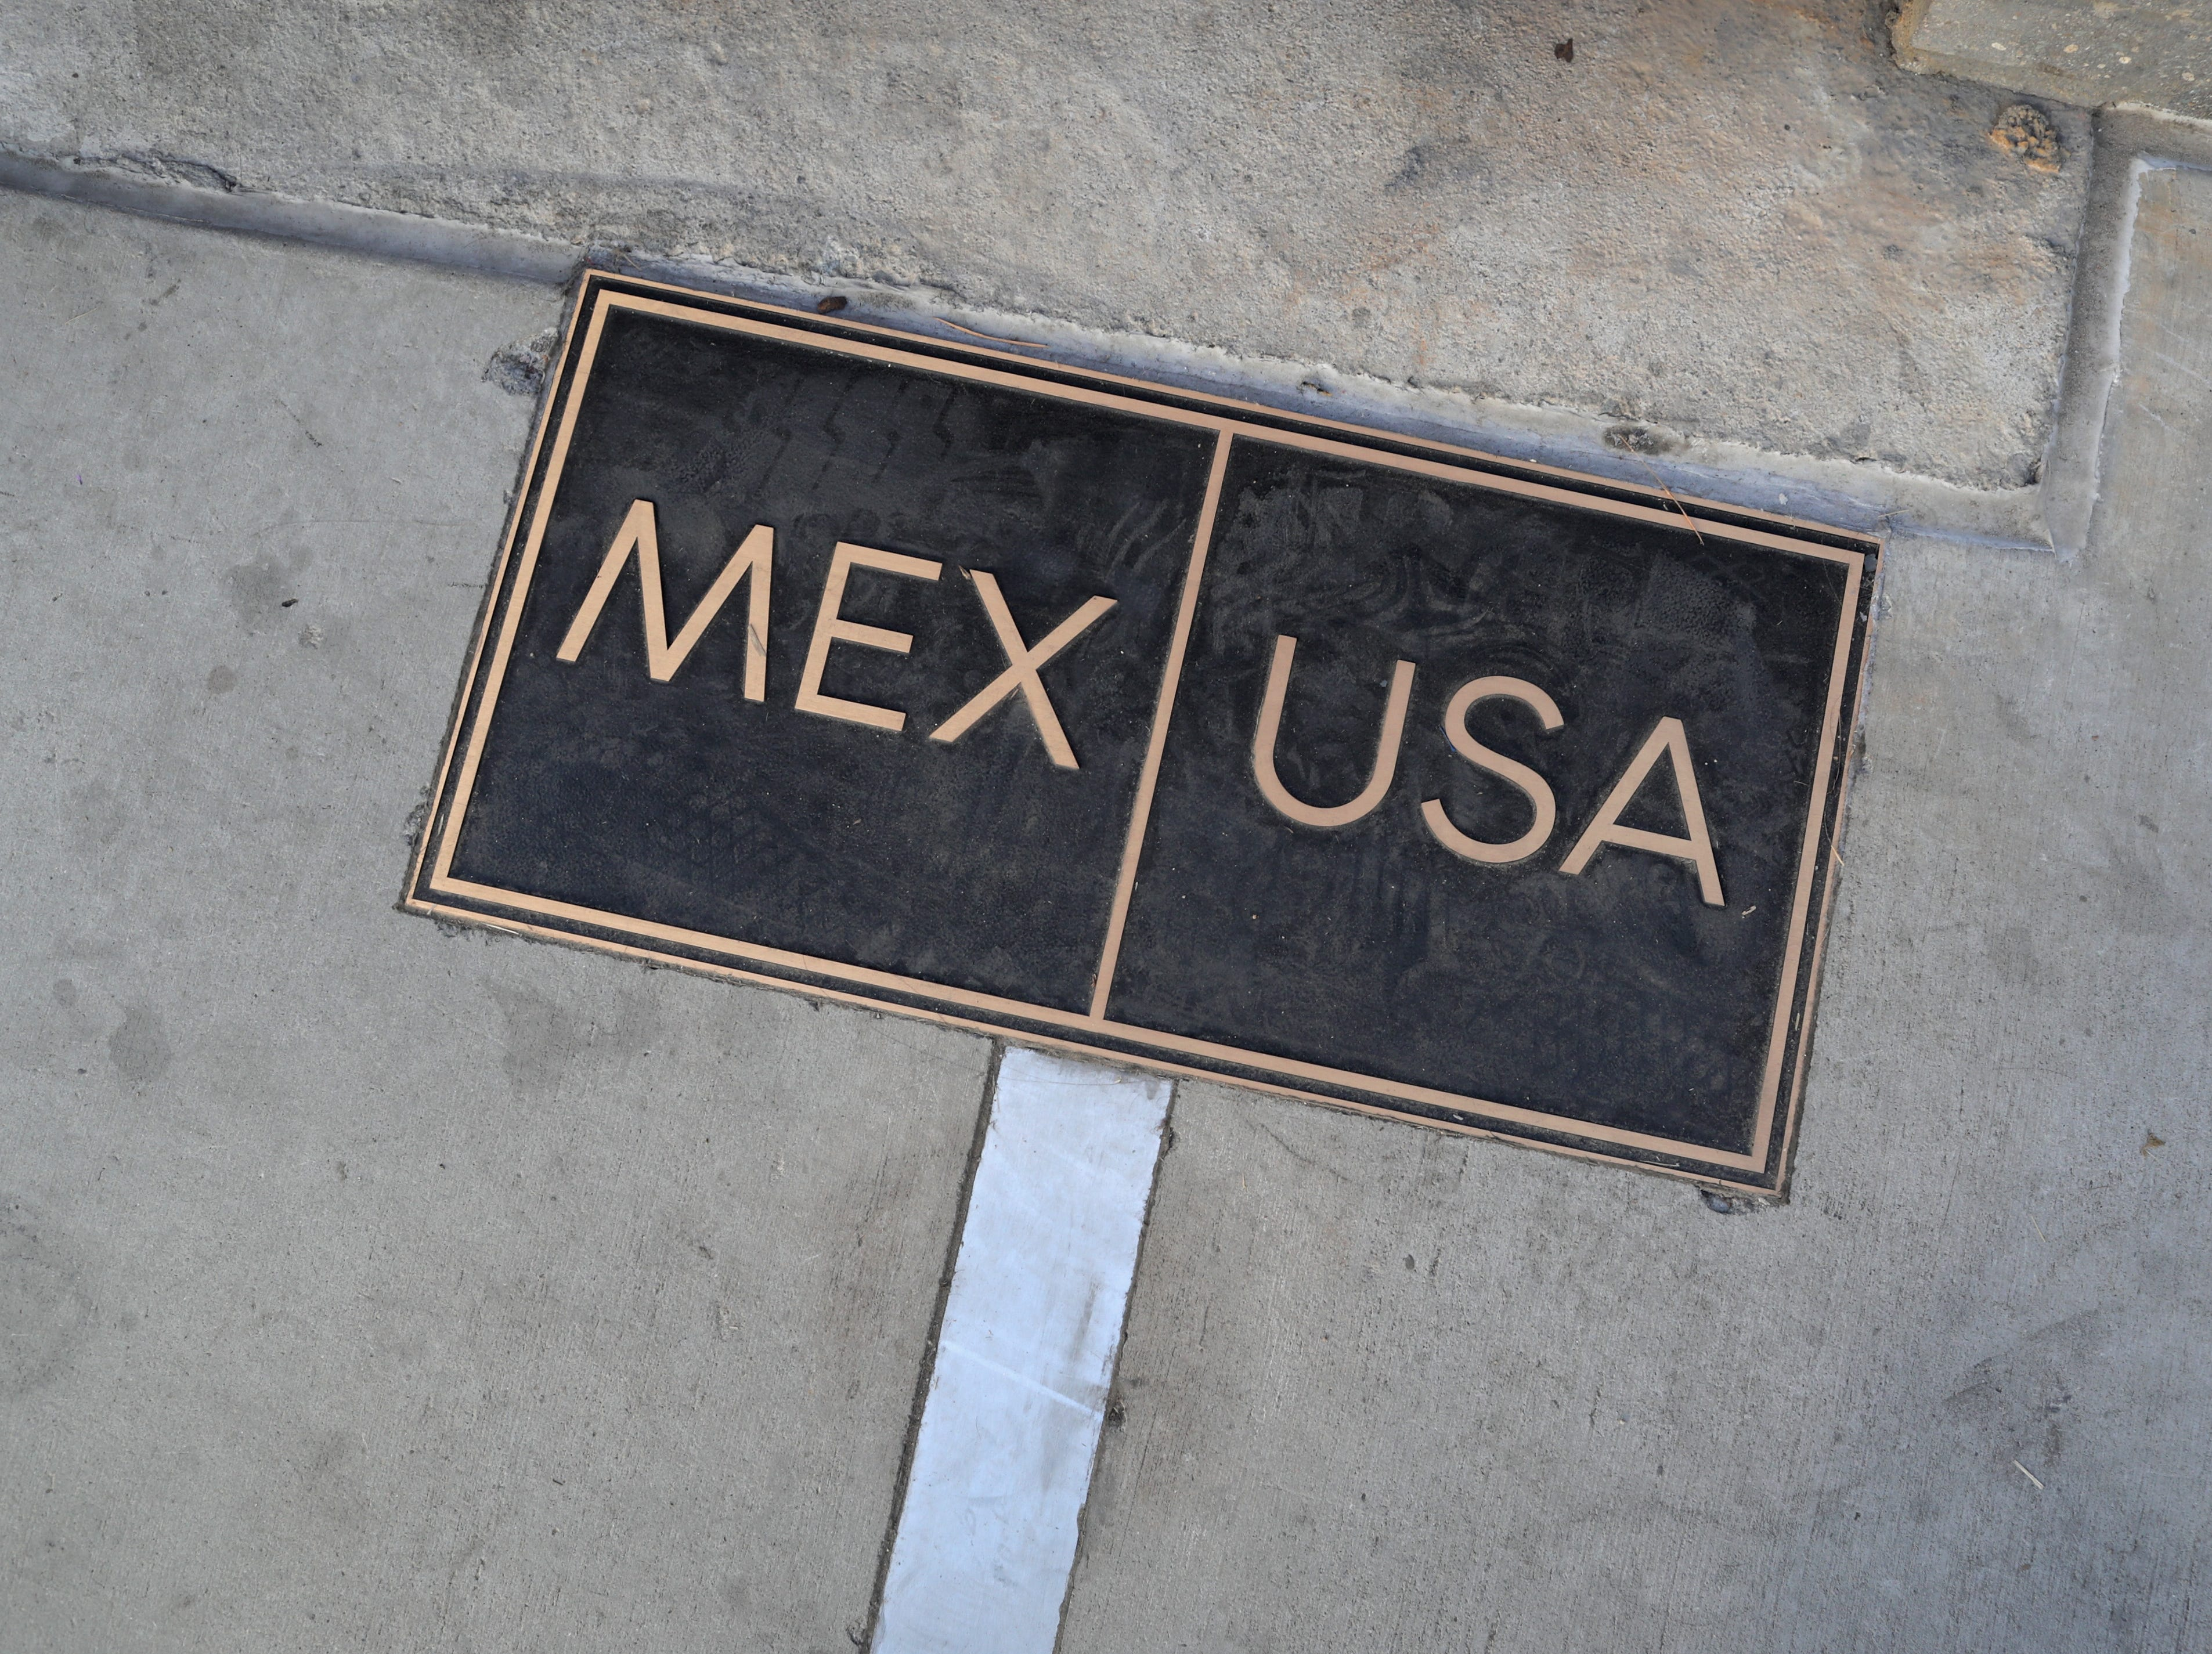 The U.S.-Mexico border is marked on Nov. 16, 2018 in San Ysidro, CA. U.S. border agencies continued to fortify the border with razor wire and additional personnel as members of the migrant caravan arrived to Tijuana across the border.